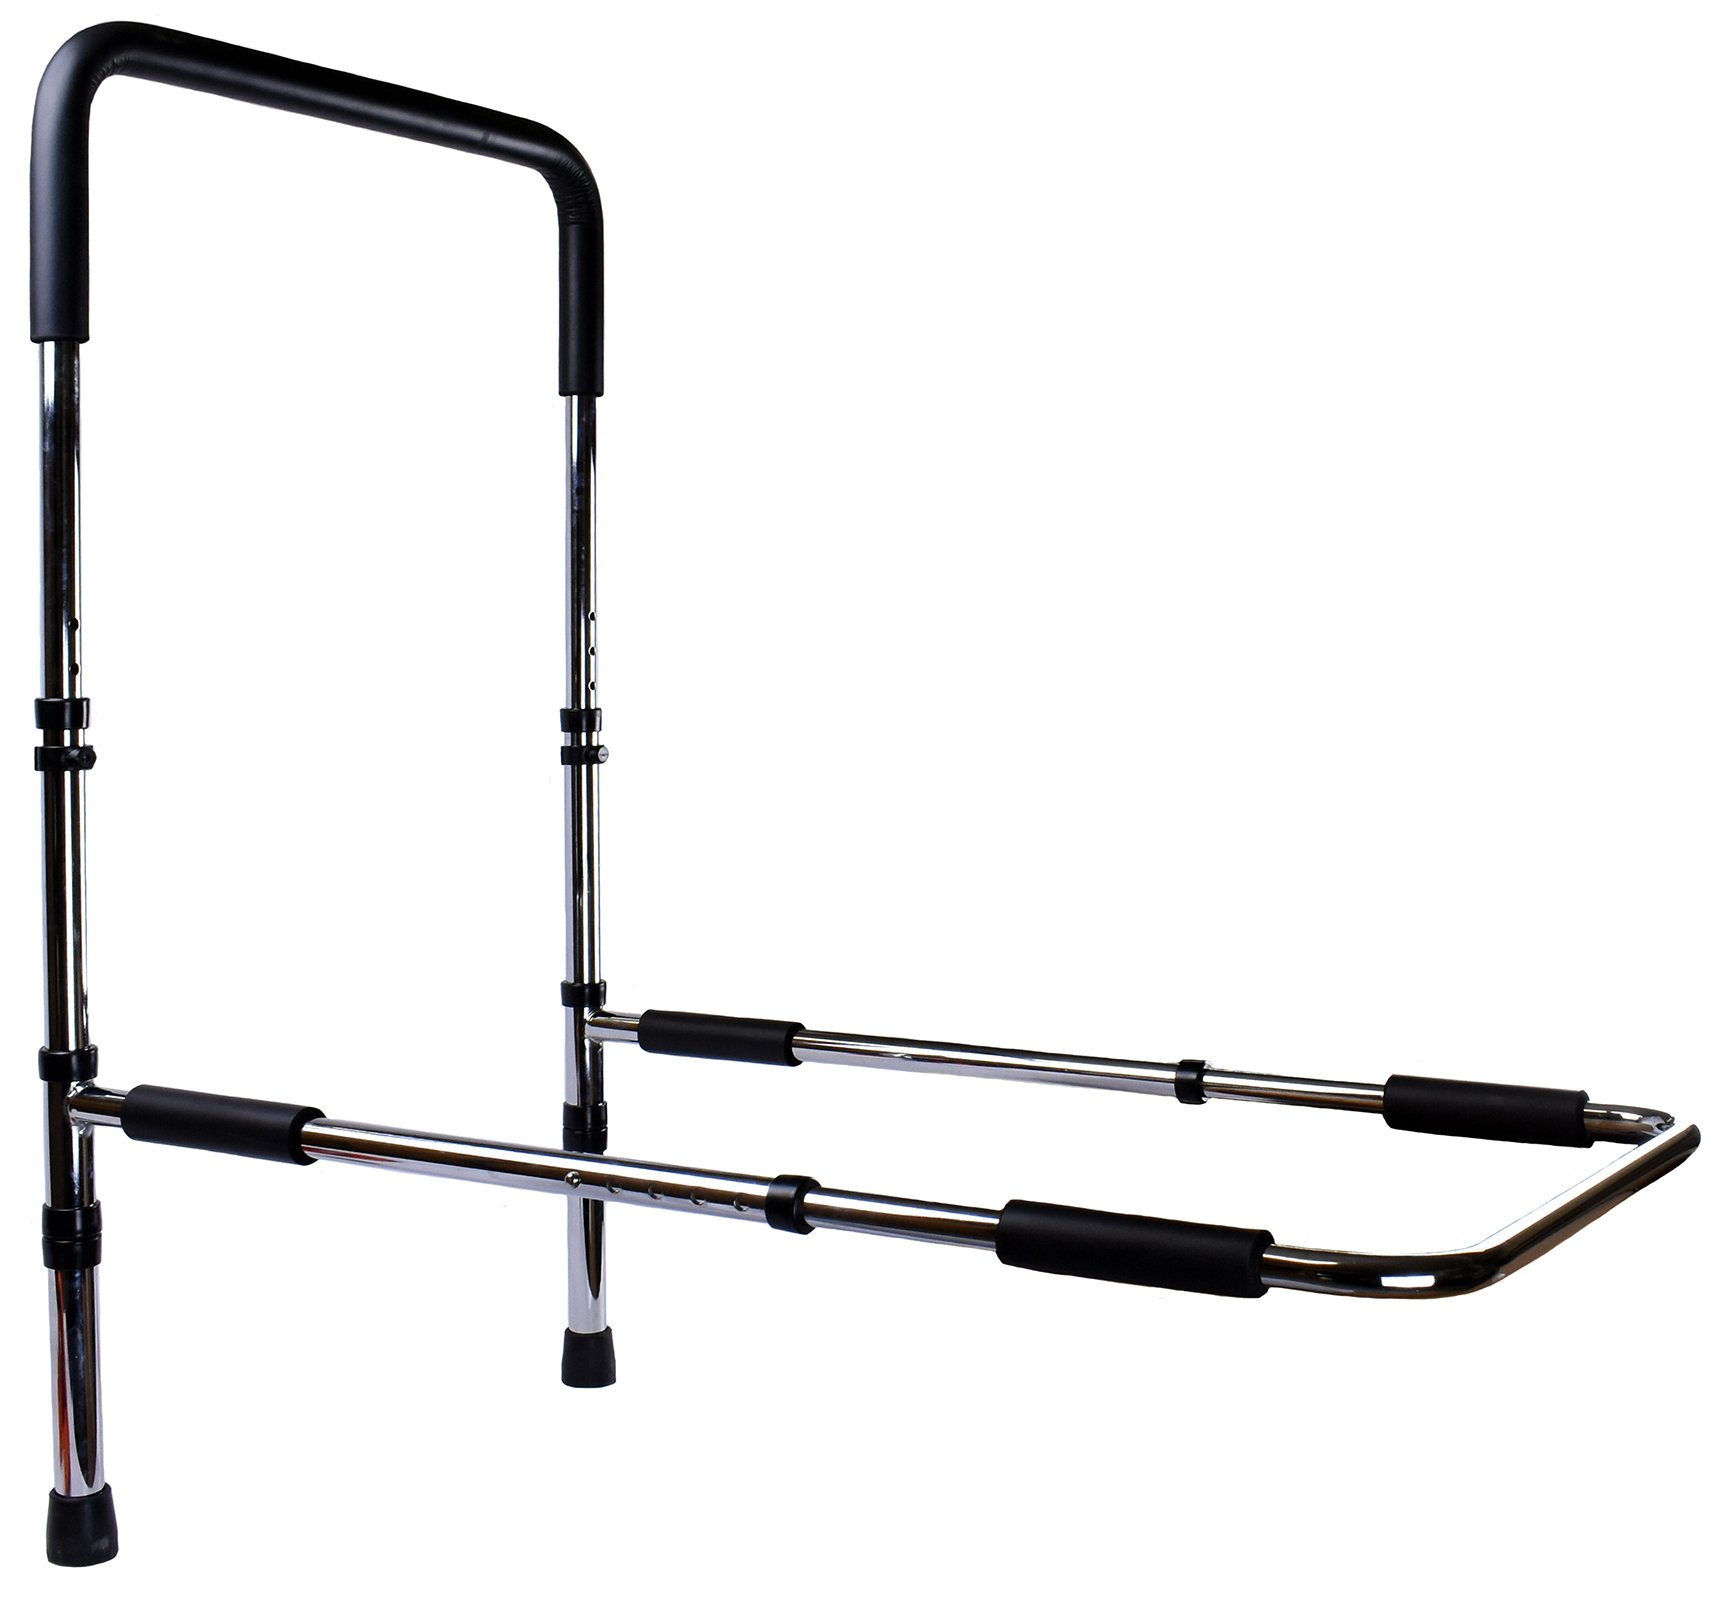 Liberty Bed Assist Rail – The Perfect Fit Or Your Money Back Guarantee & Lifetime Warranty